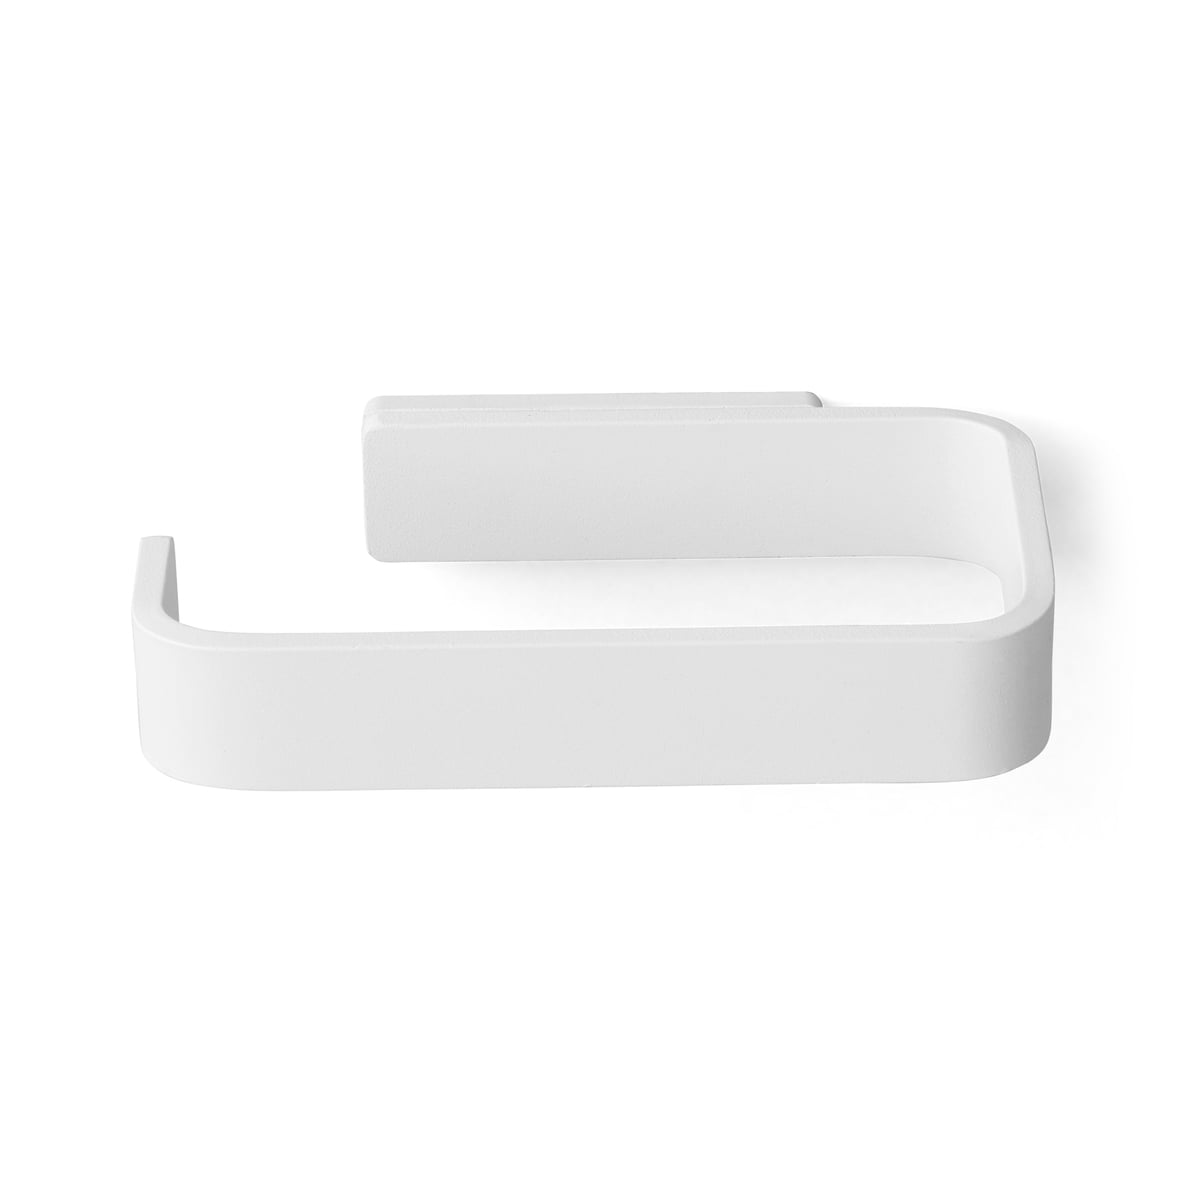 Menu Toilet Paper Holder White Top